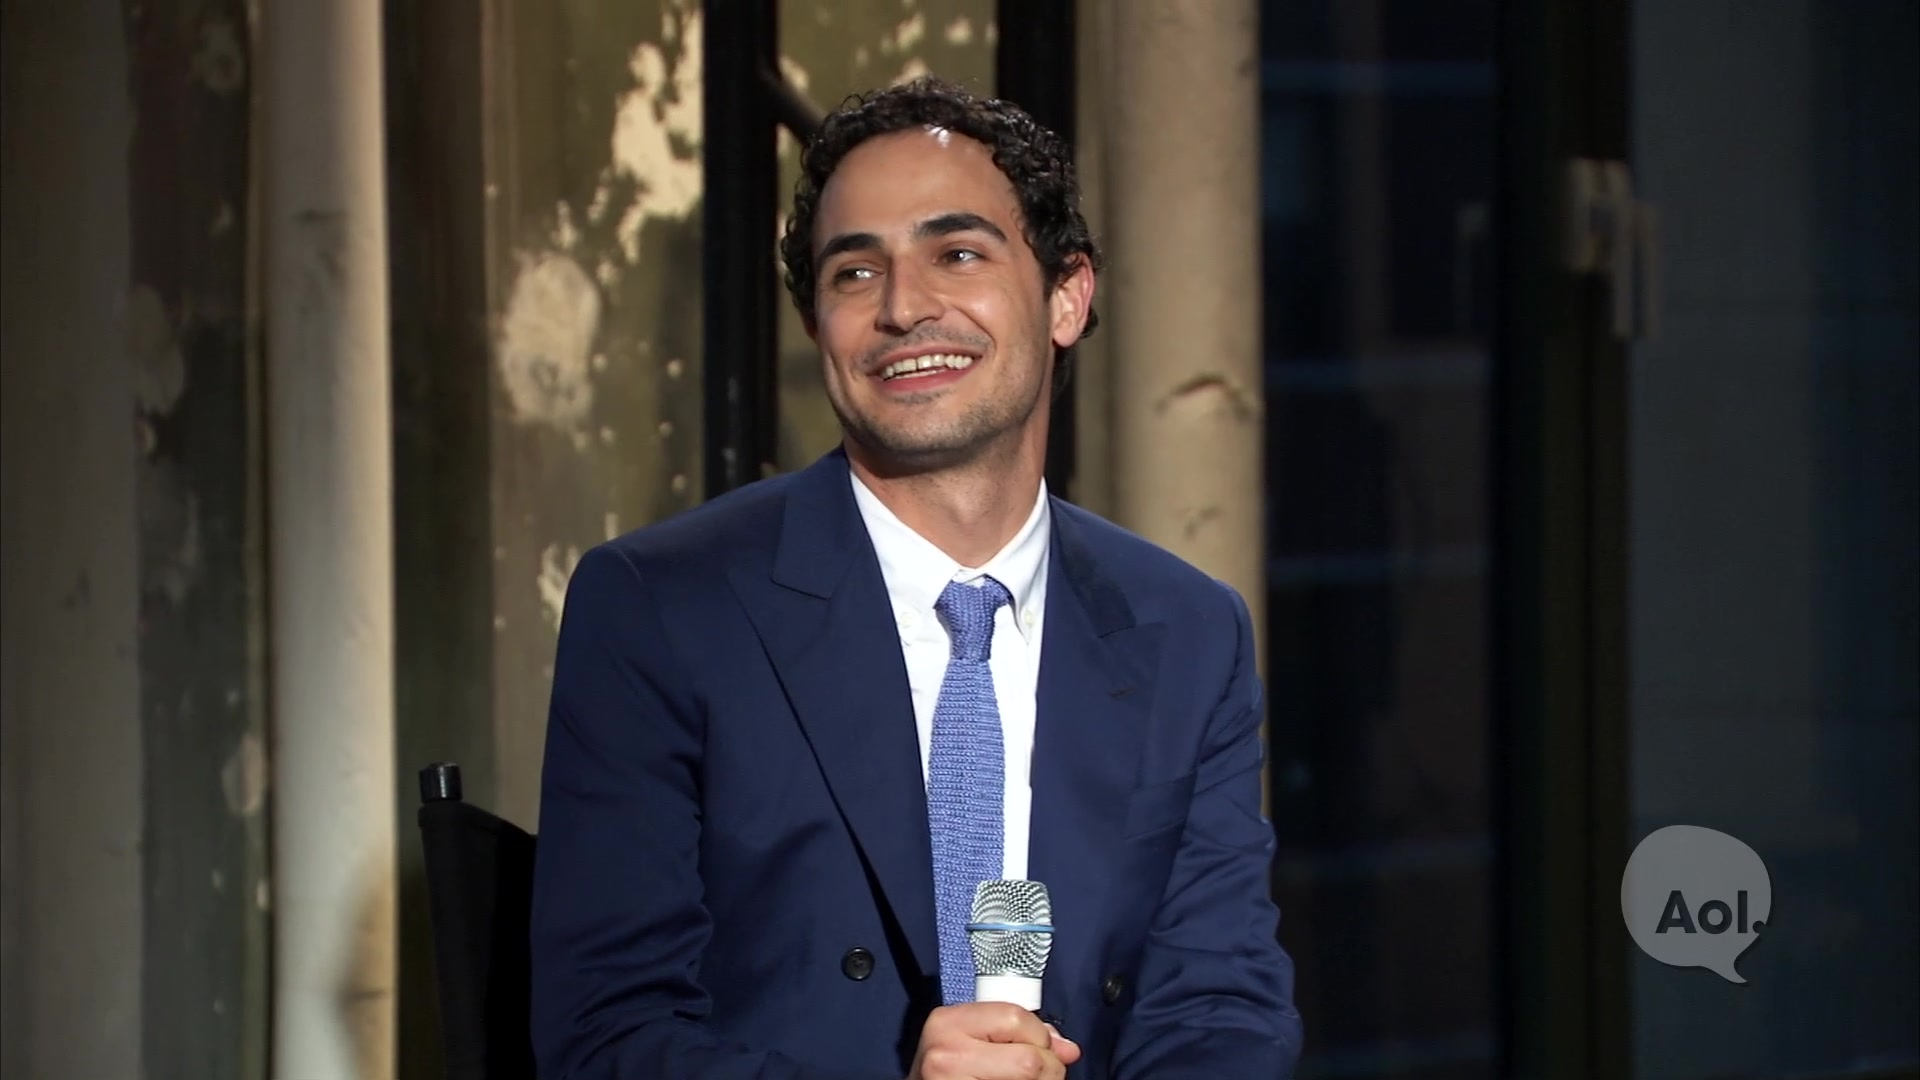 Zac Posen - From Draping to Making